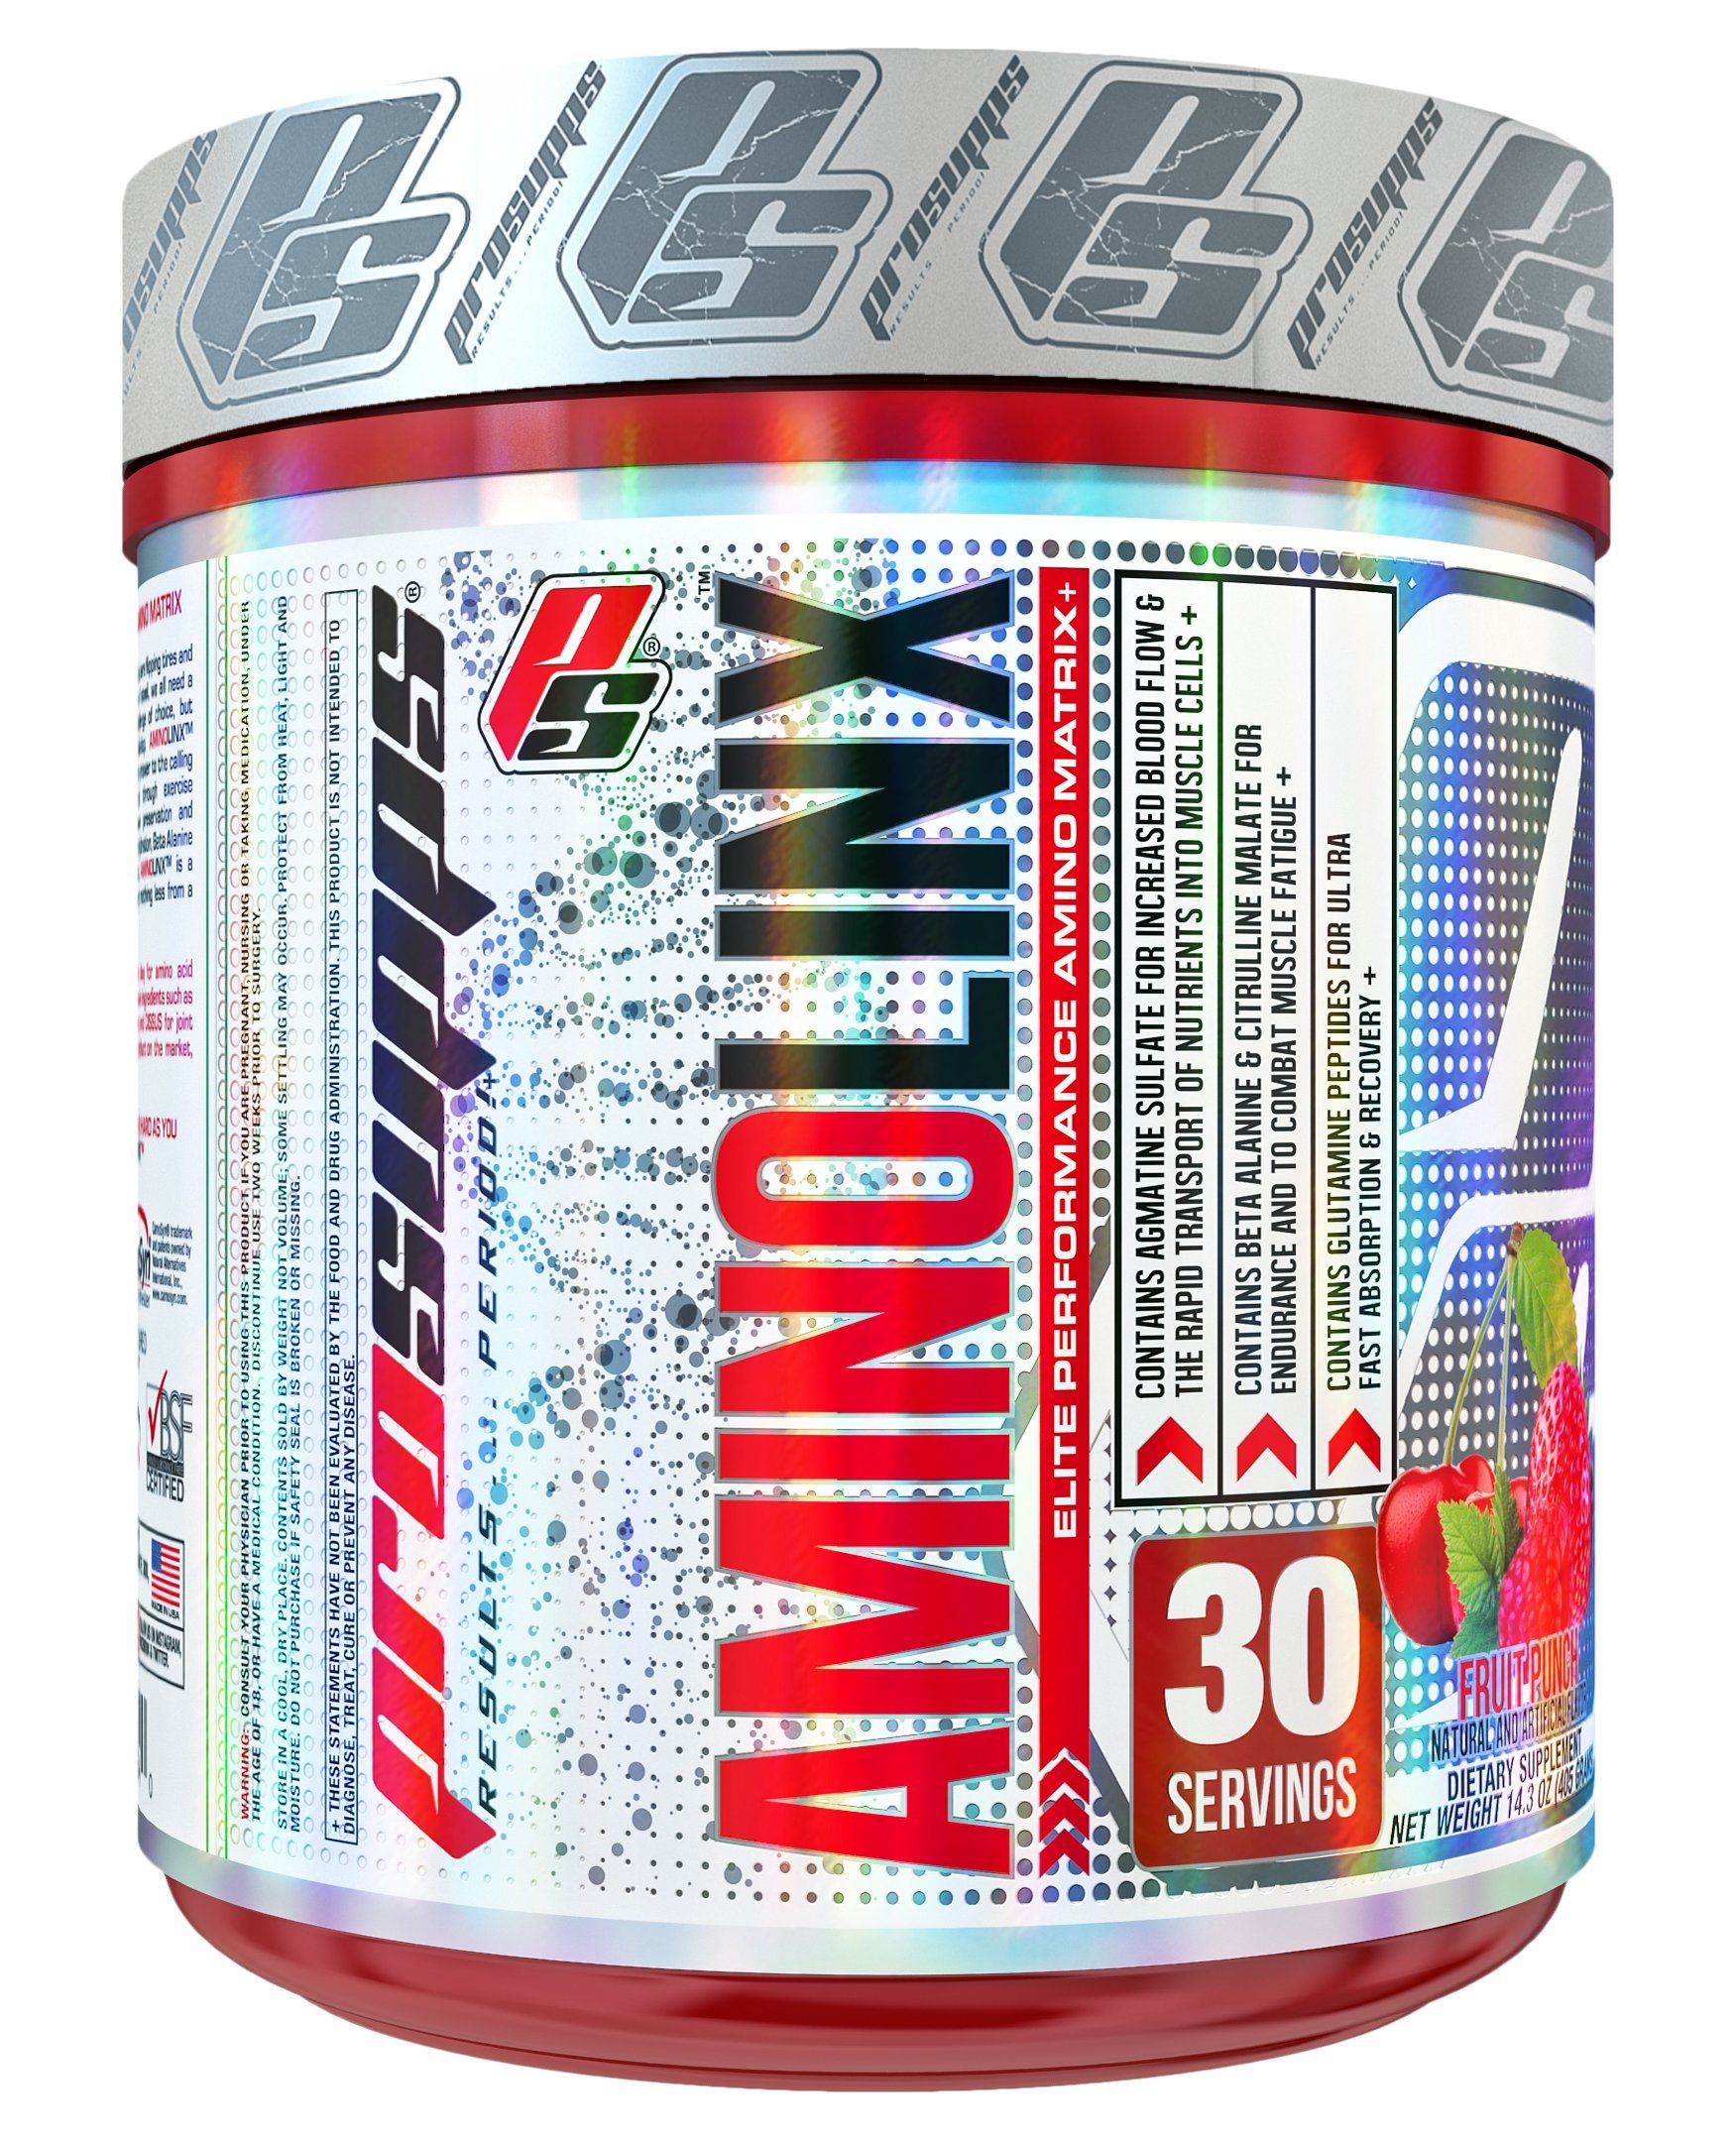 Pro Supps Aminolinx Elite Performance Amino Matrix, Fruit Punch, 30 Servings, BCAA and EAA Matrix